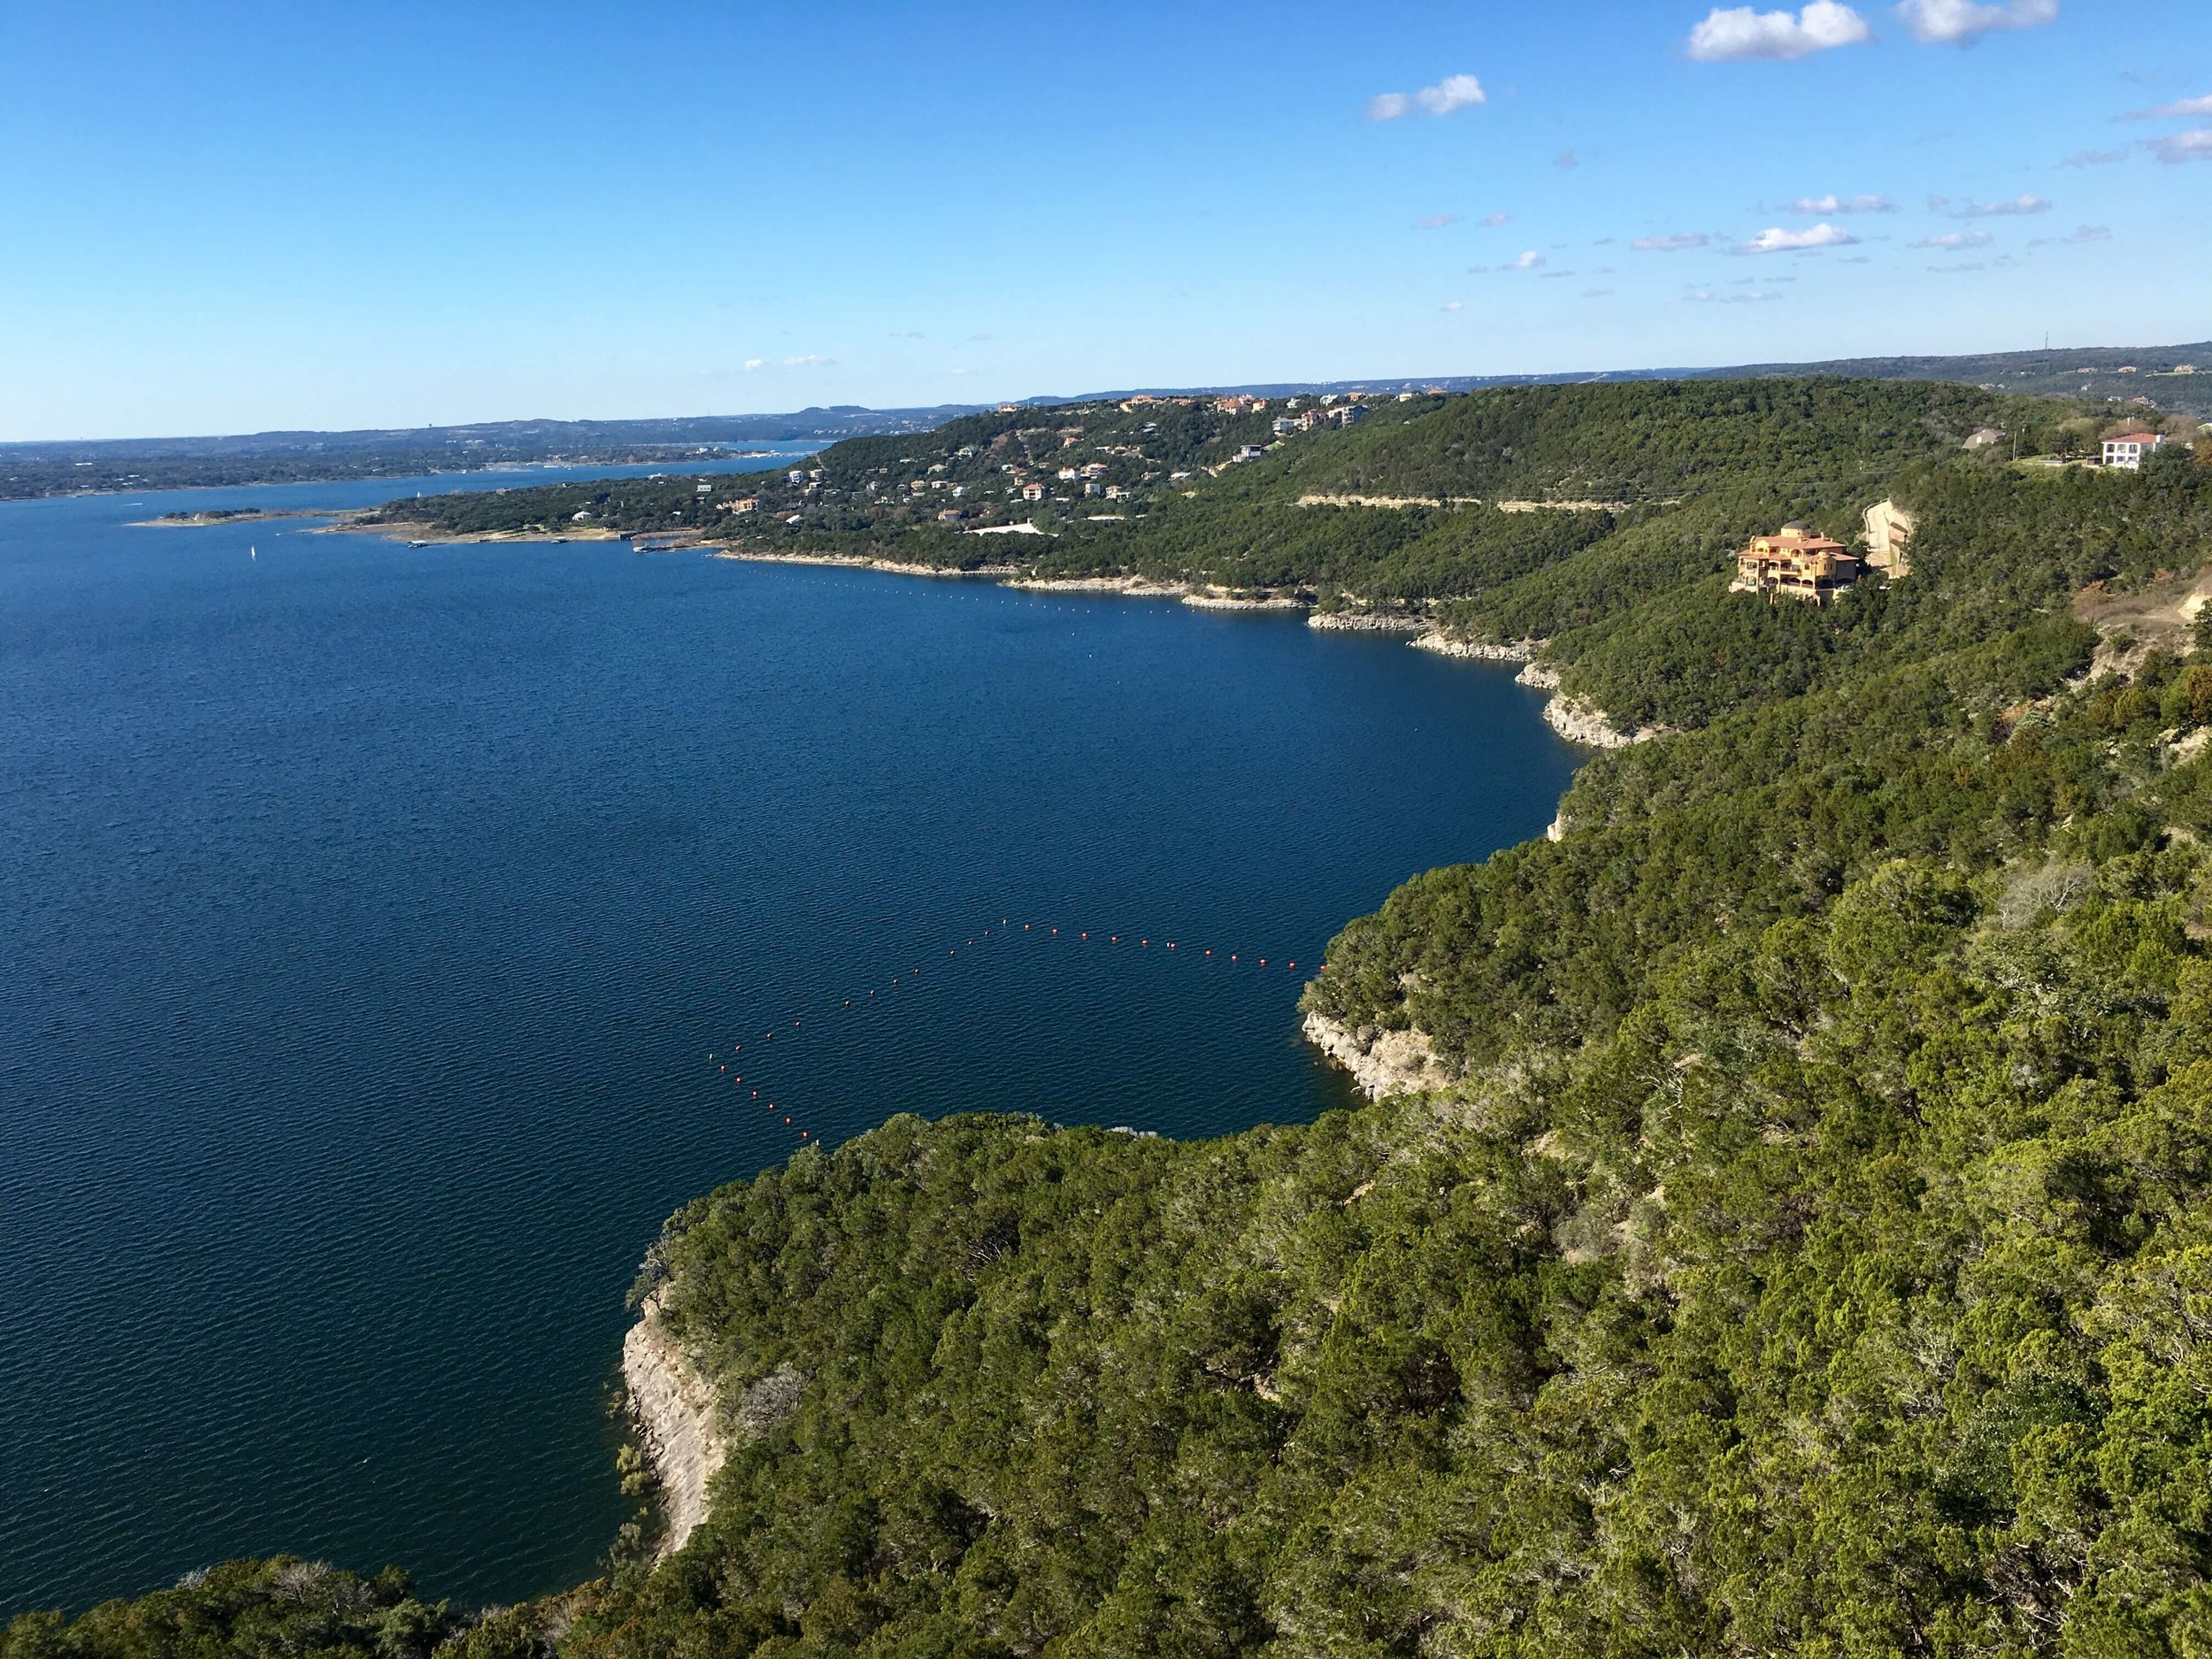 A grand view of Lake Travis, in the Austin Hill Country of Texas.